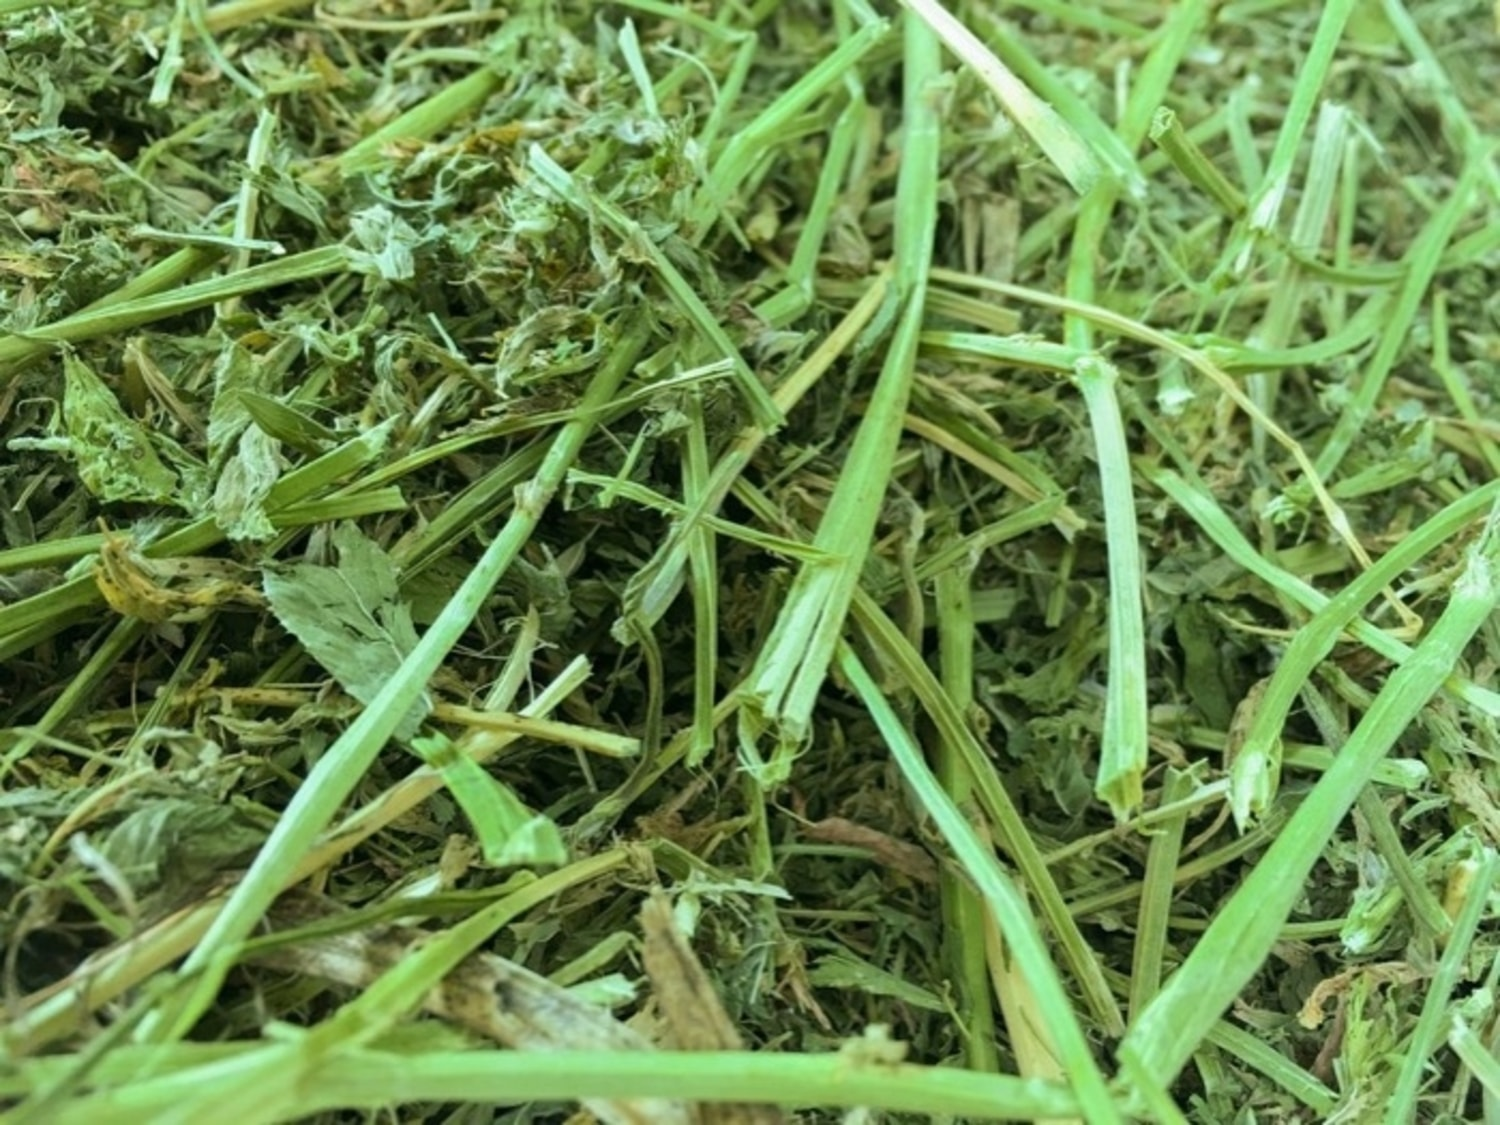 Animal feed from alfalfa before